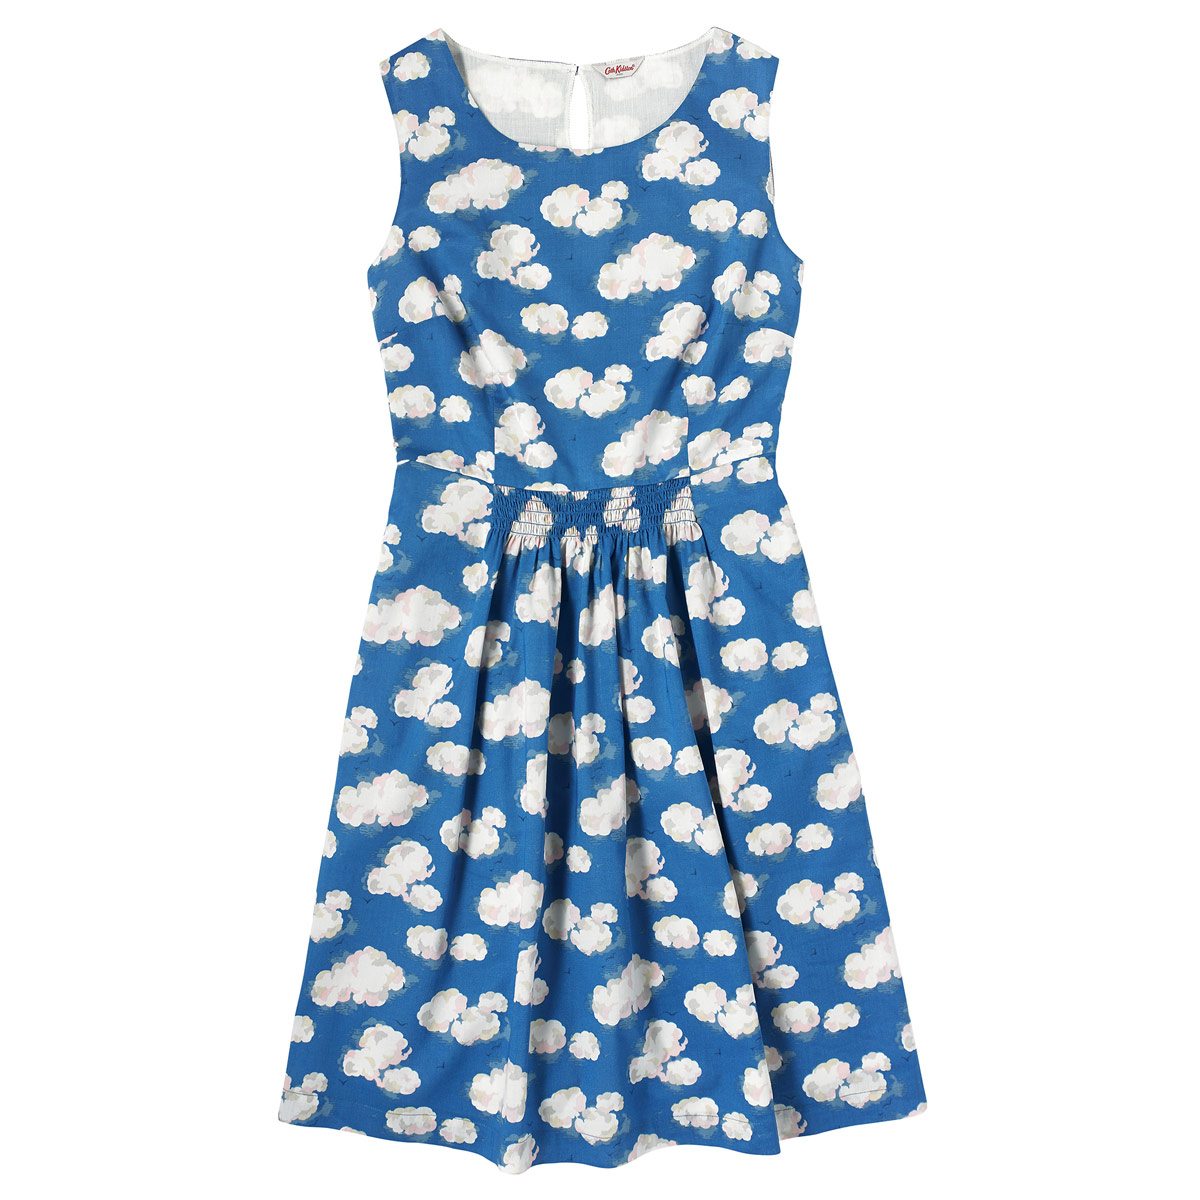 Clouds cotton dress, £60, Cath Kidston